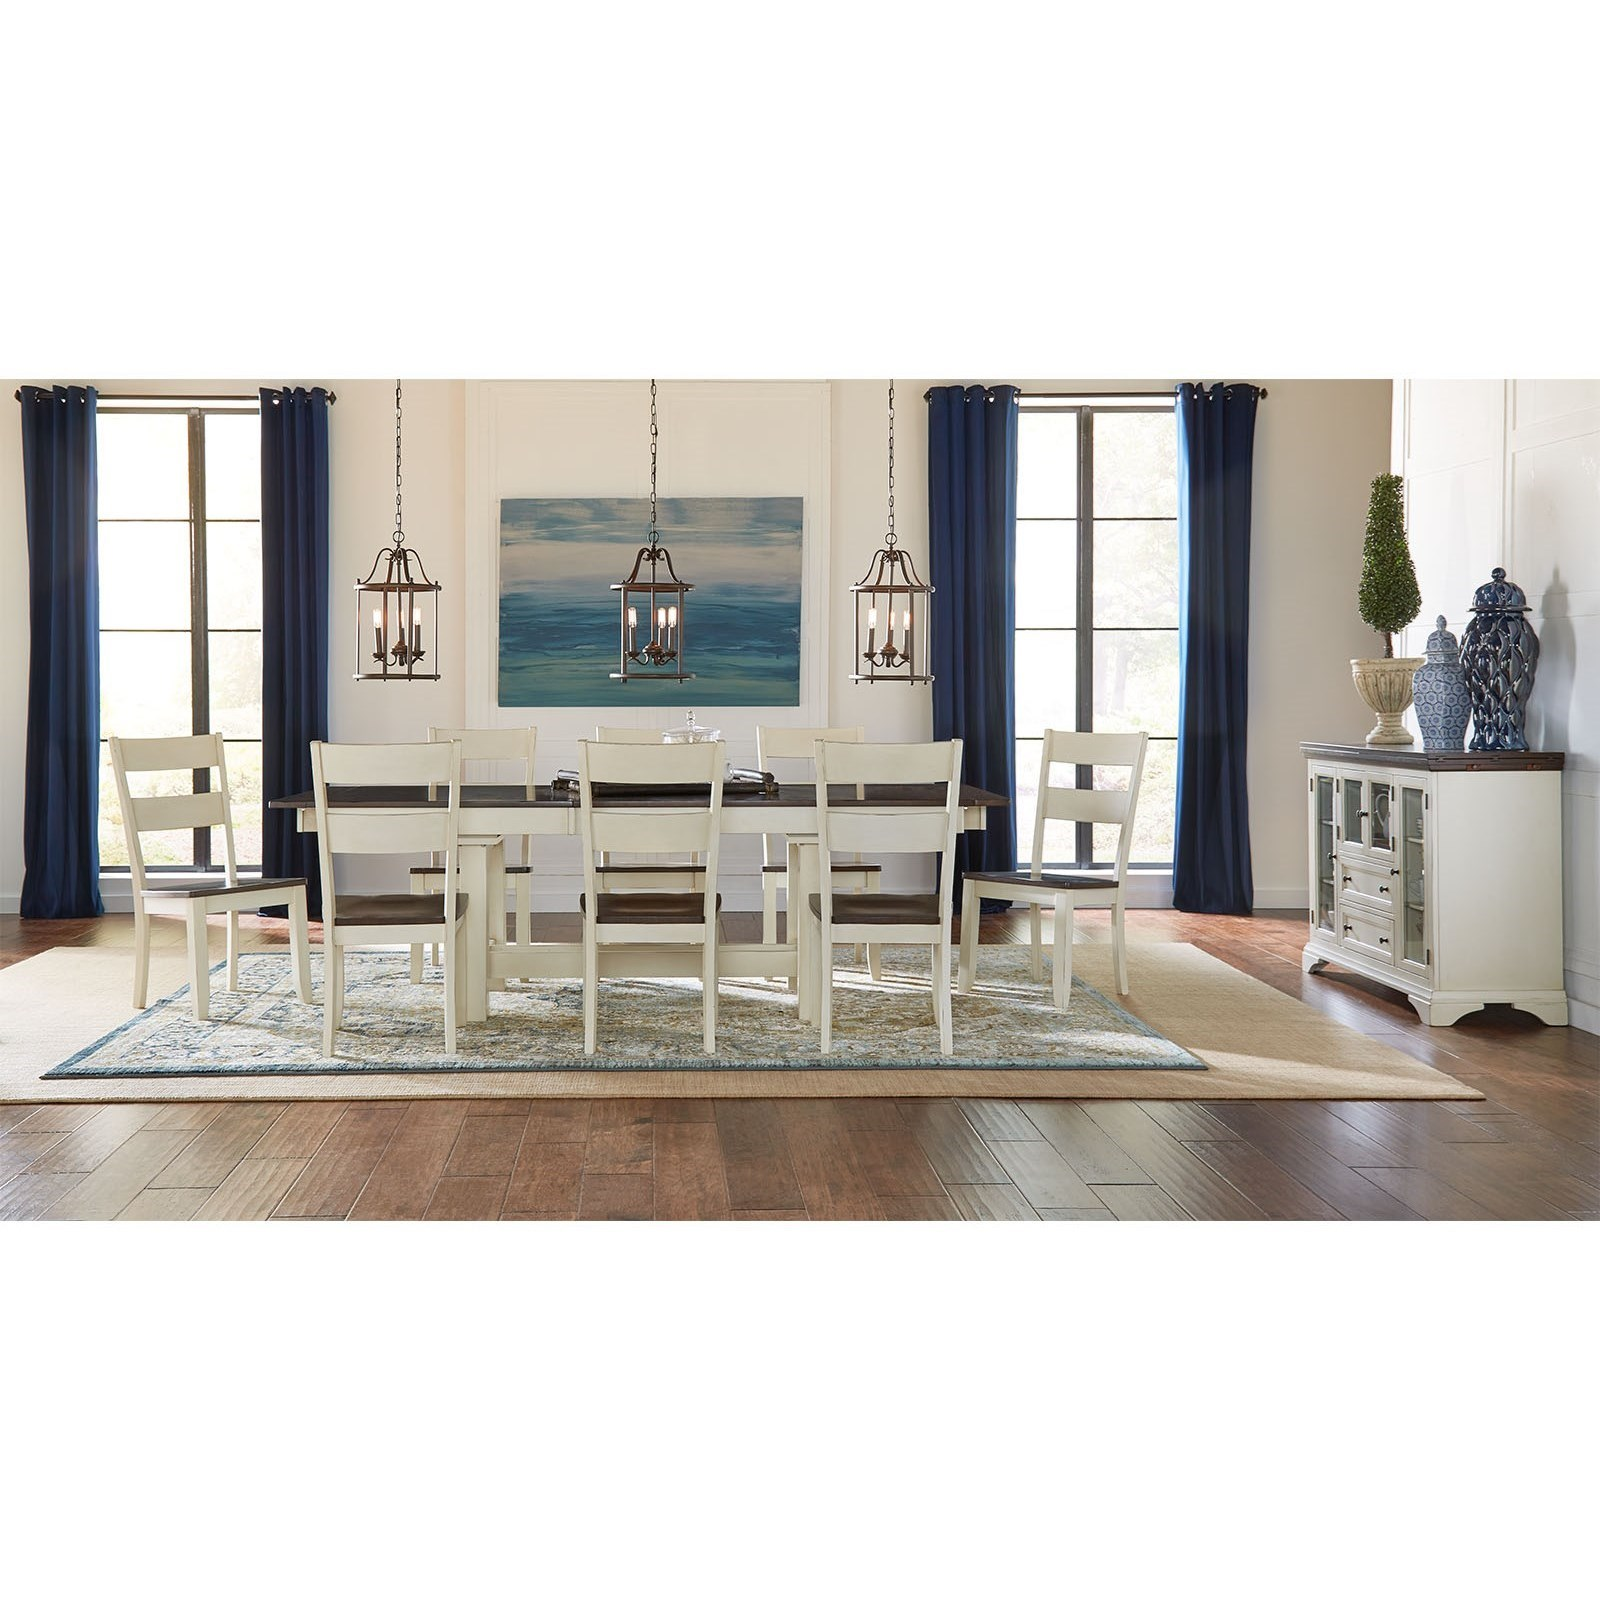 AAmerica Mariposa Trestle Table With 3 Butterfly Storage